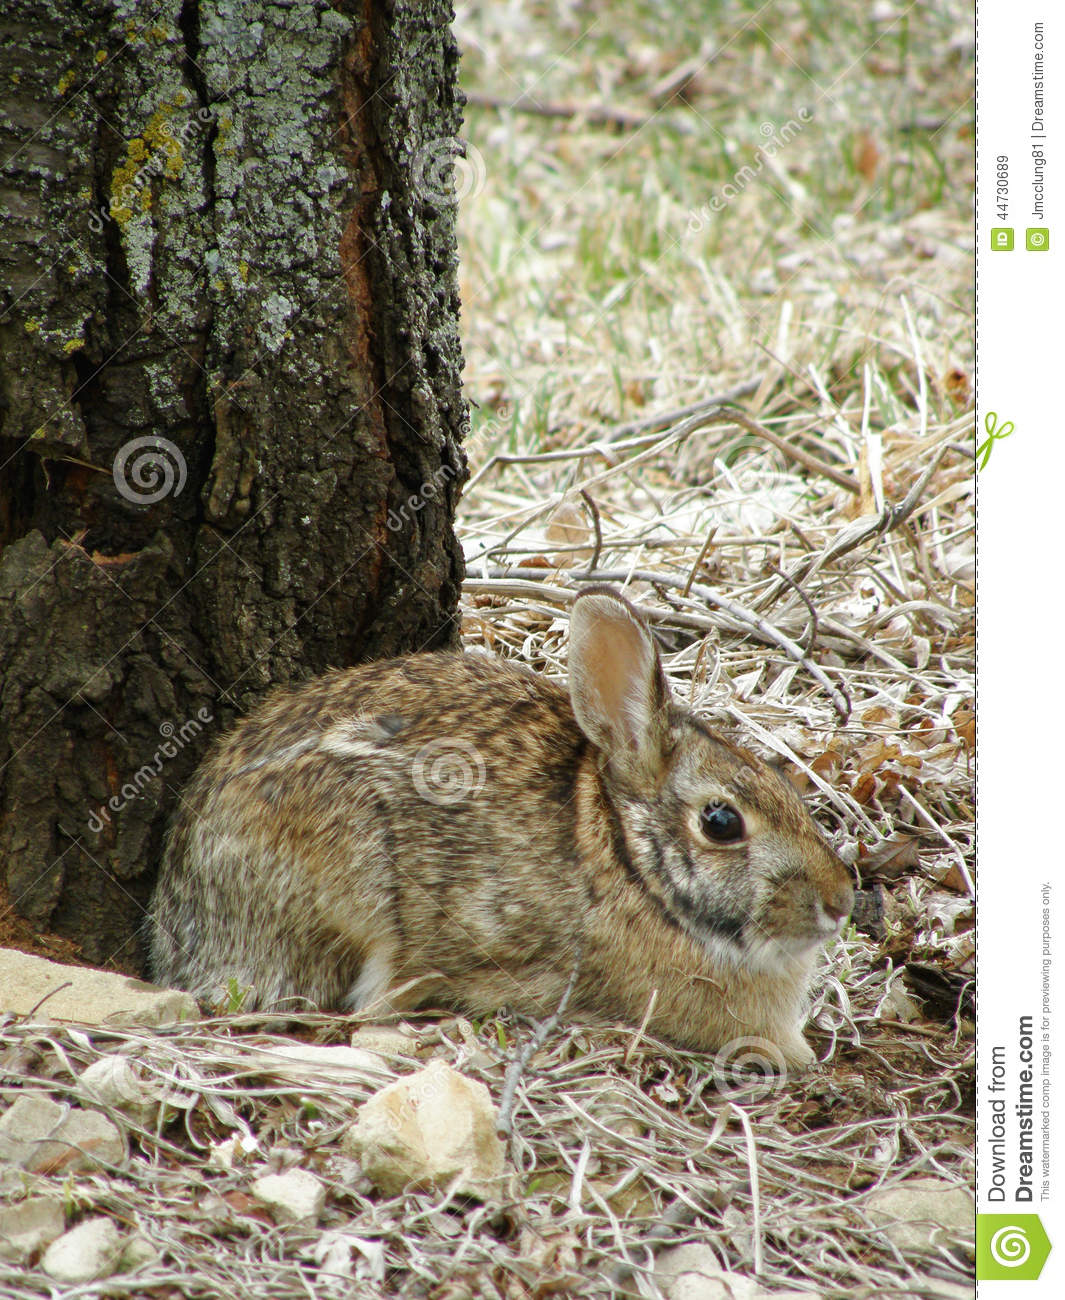 Wild bunny rabbit stock image  Image of hiding, animal